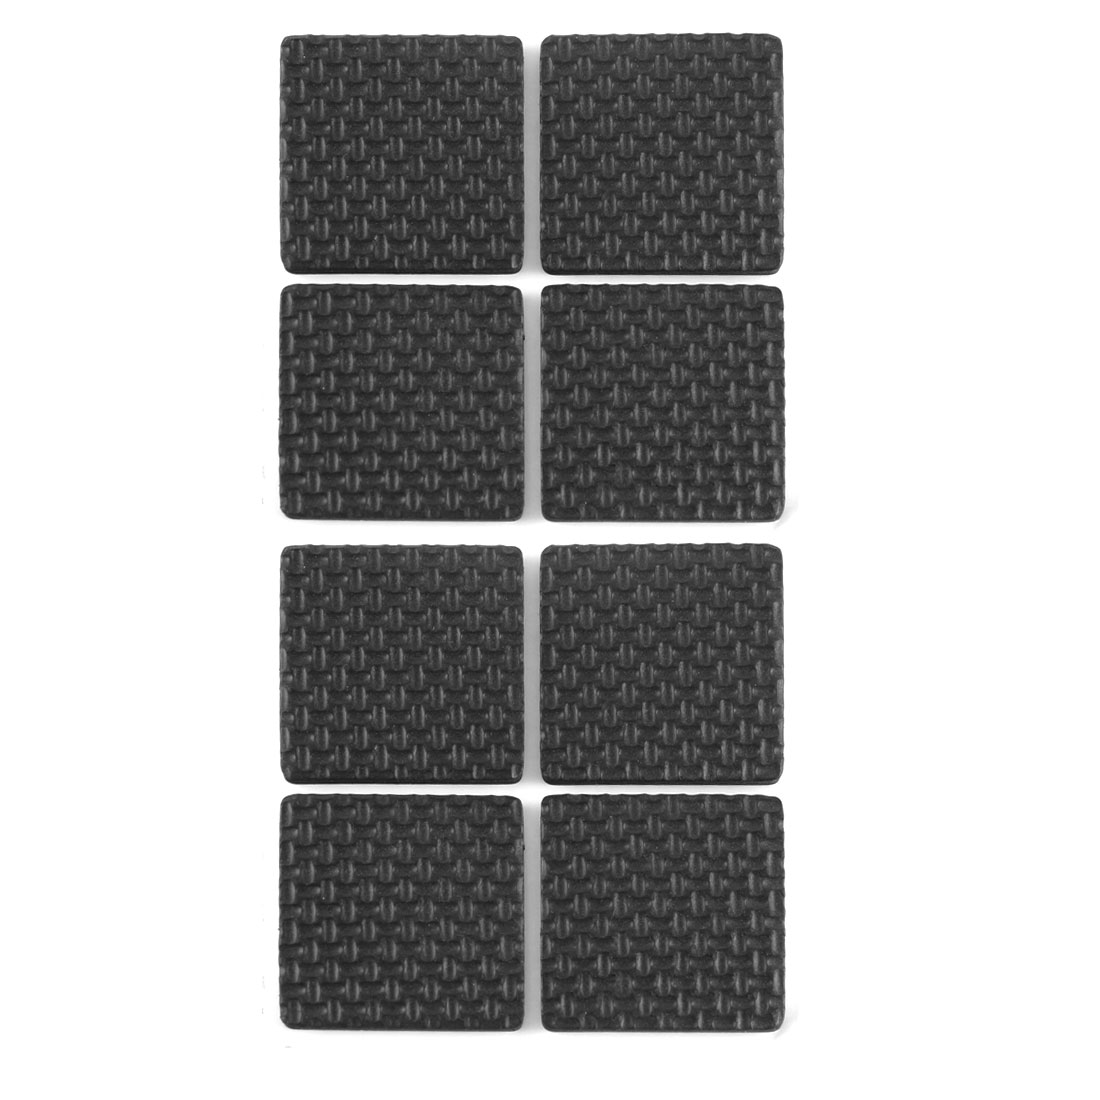 8pcs 38mm Square Self Adhesive Chair Table Sofa Furniture Pads Floor Protectors<br><br>Aliexpress